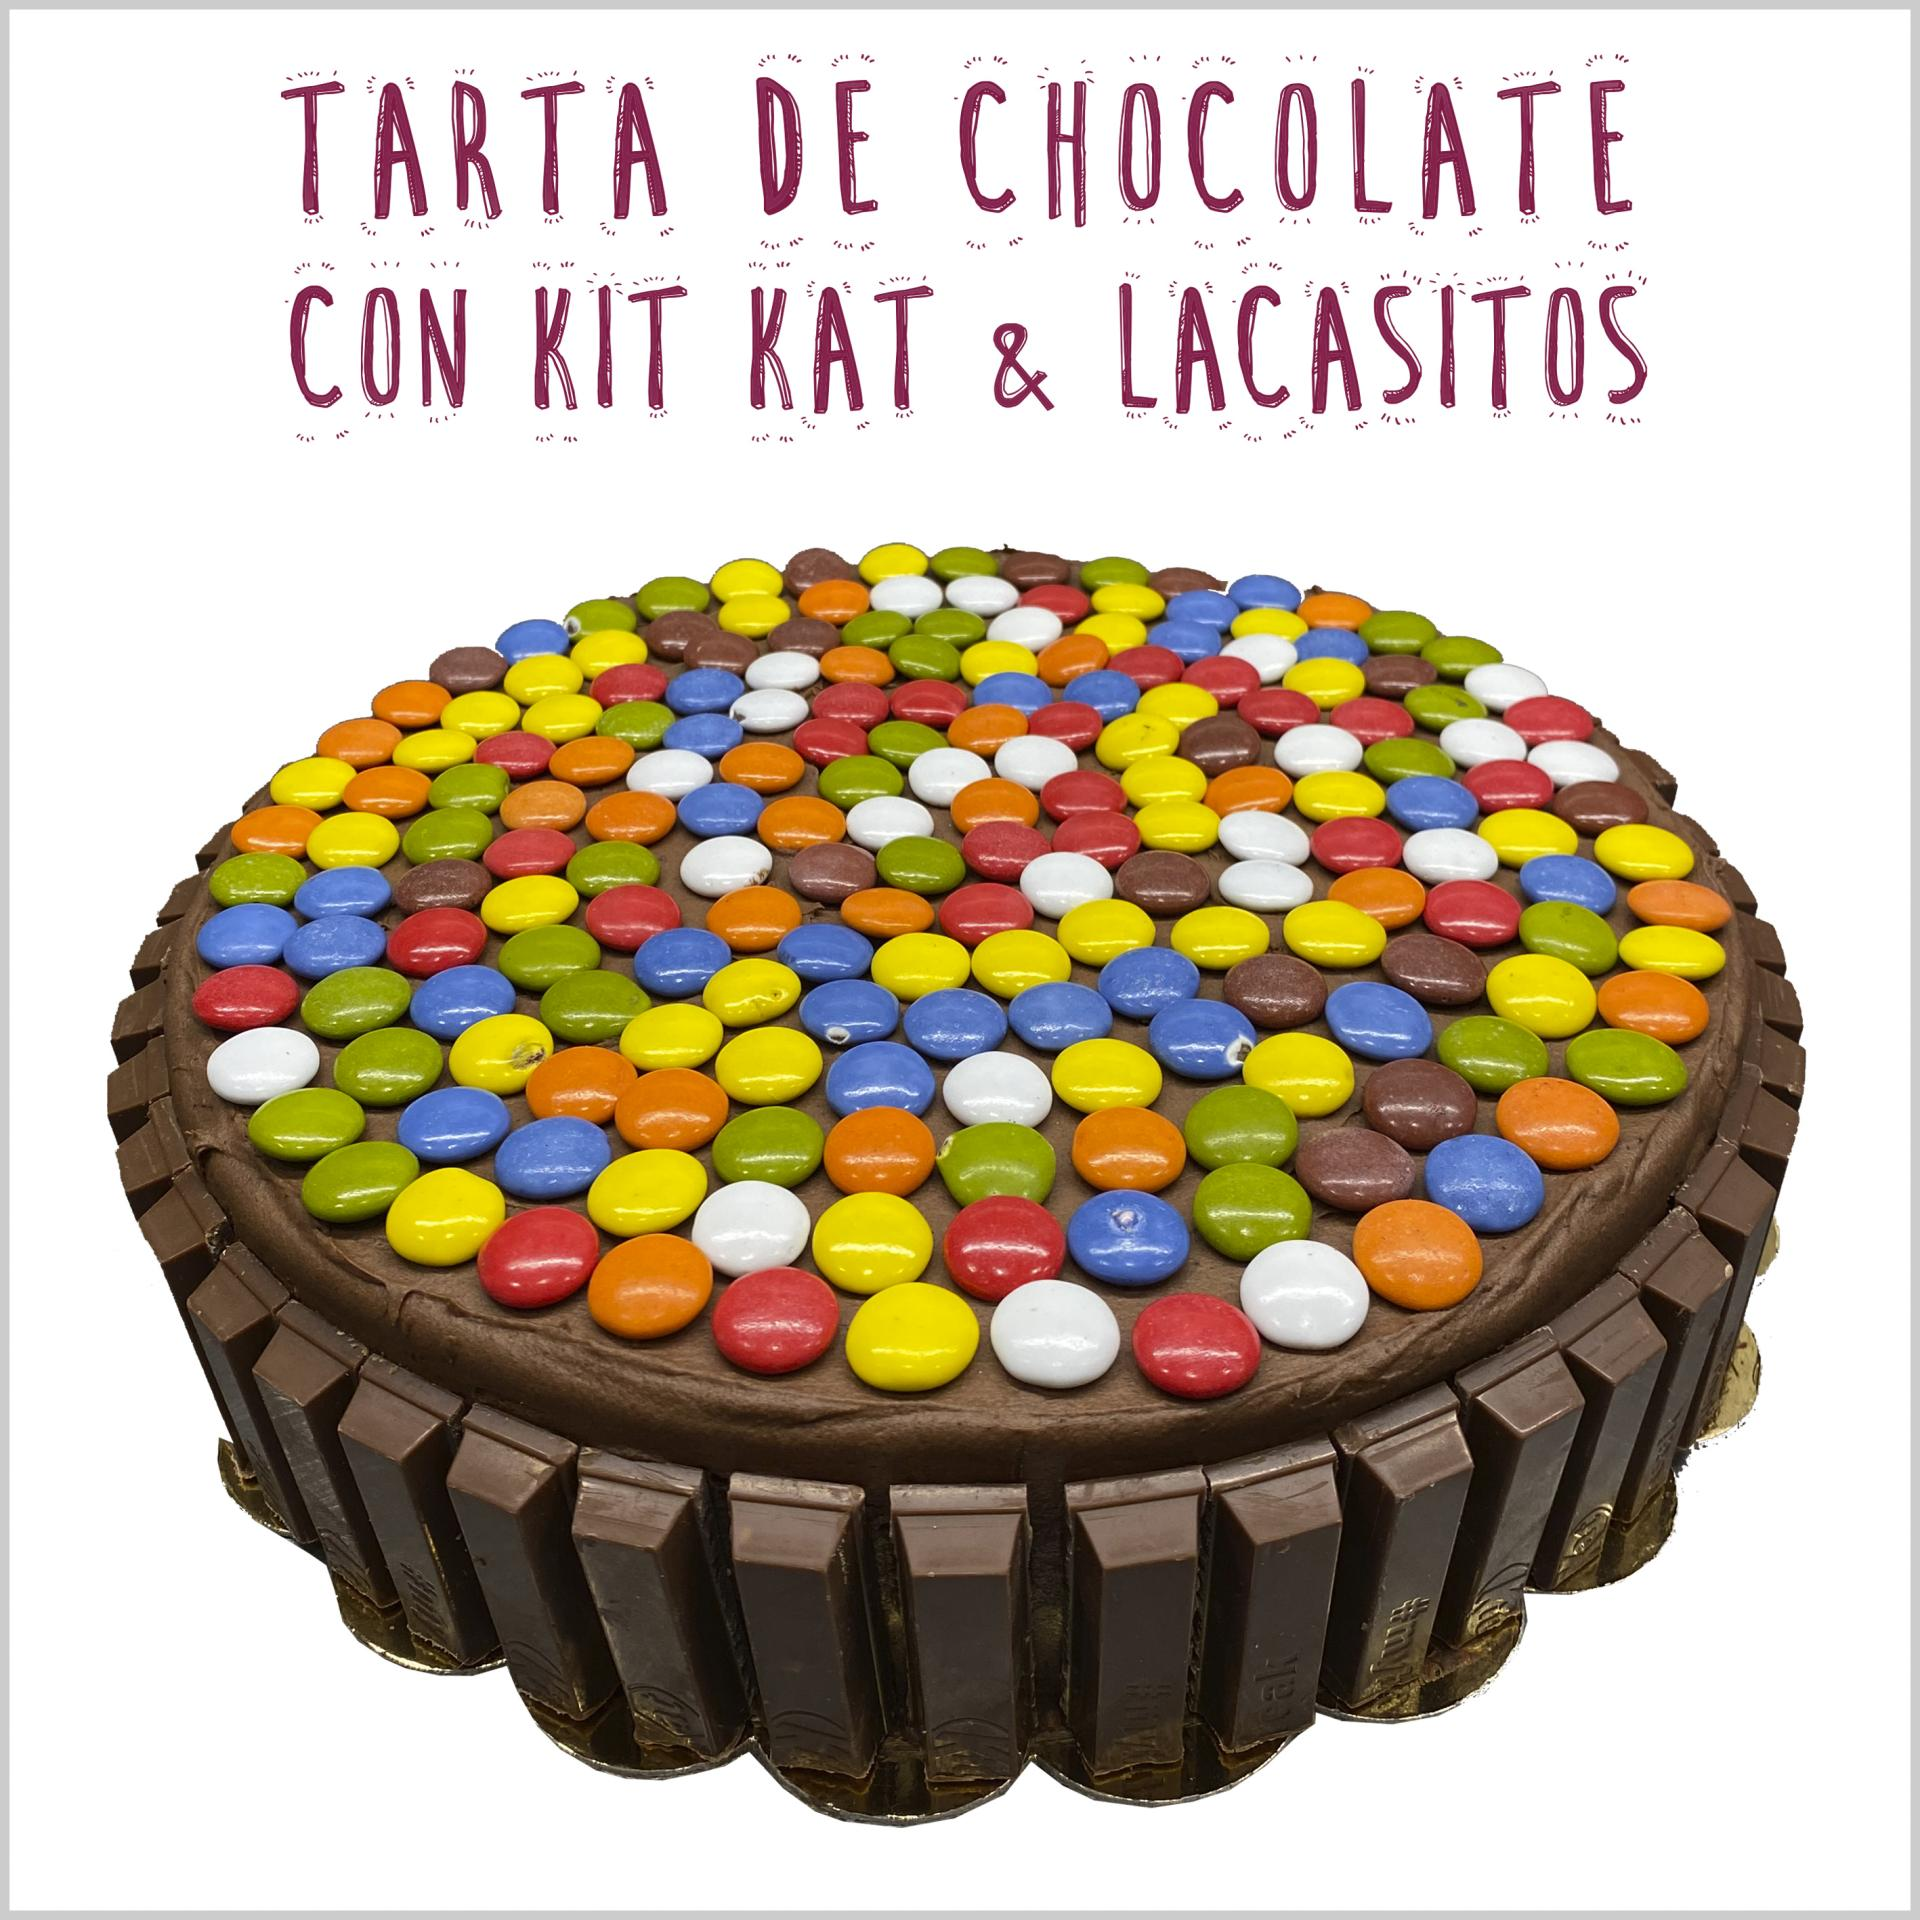 Chocolate con Kit Kat & Lacasitos